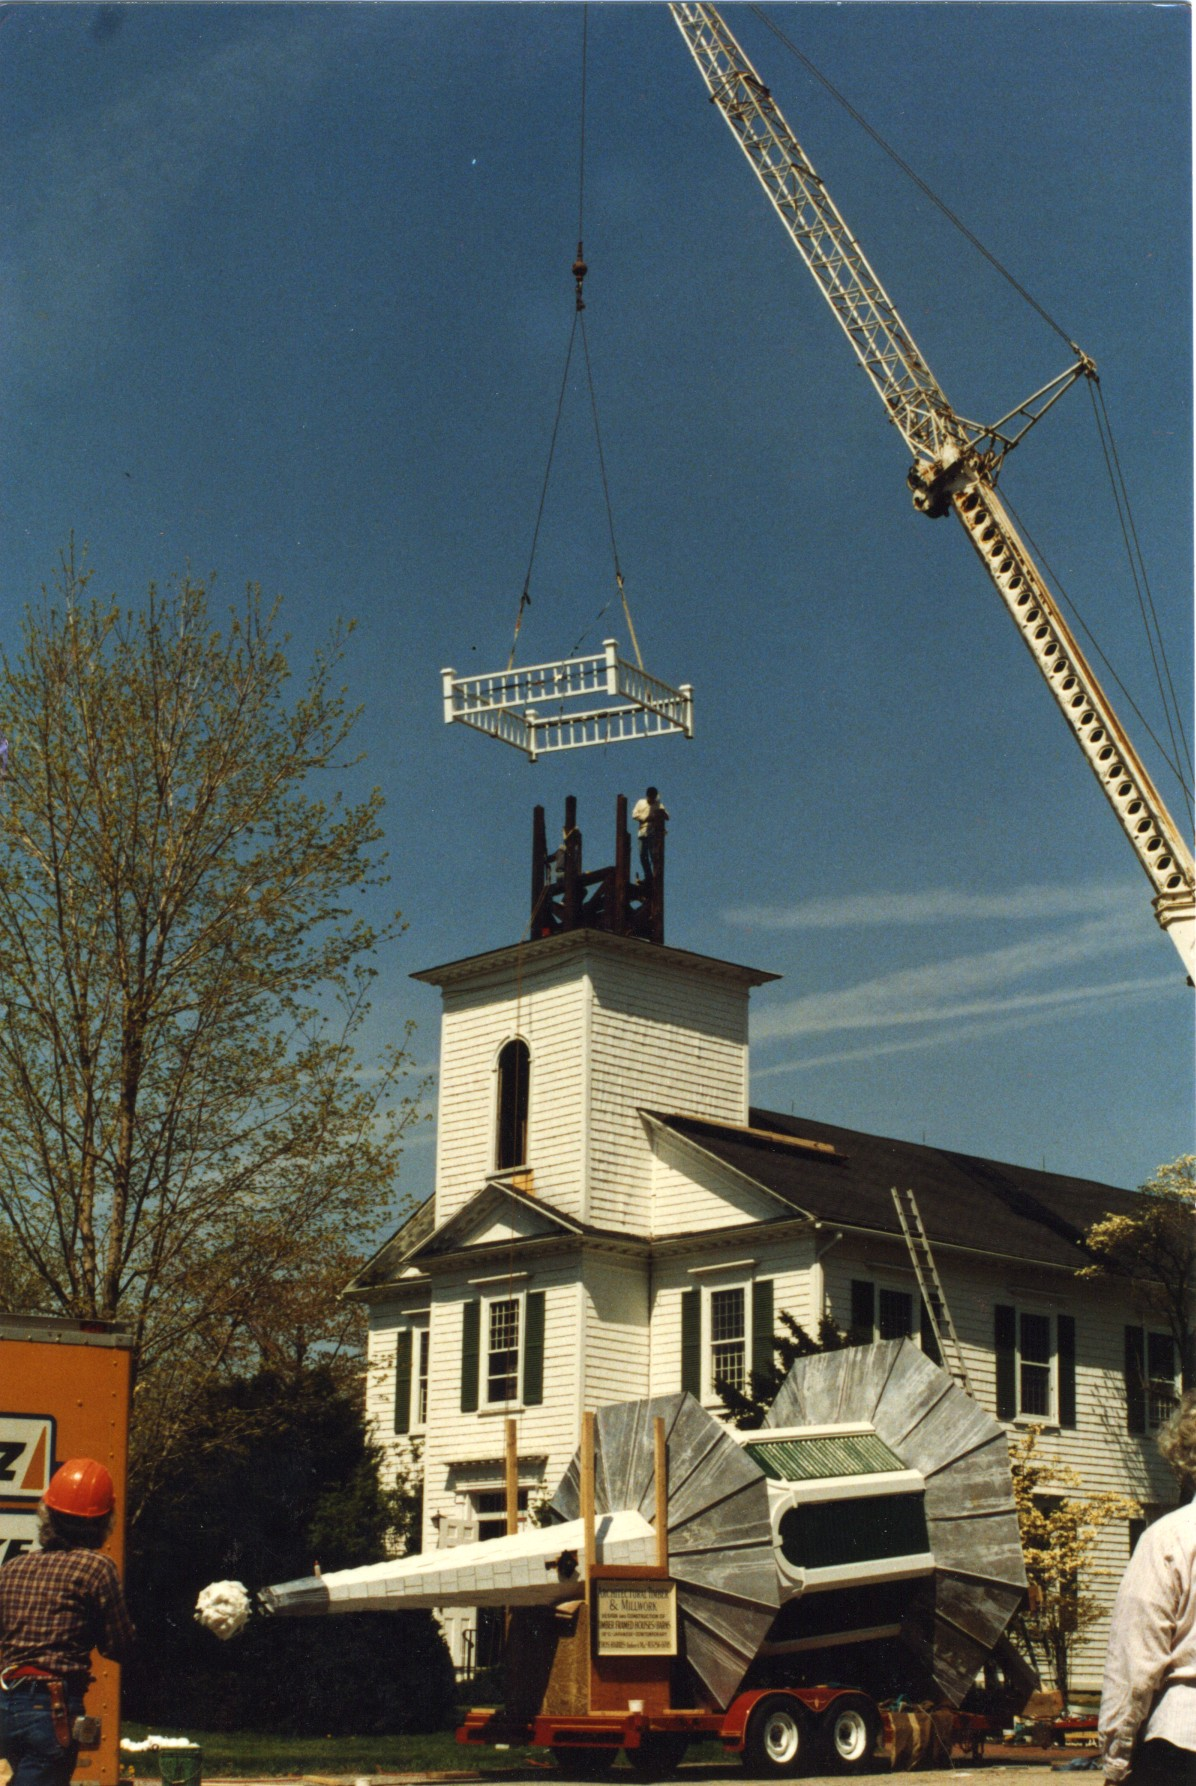 A two cupola steeple with spire atop nathrex